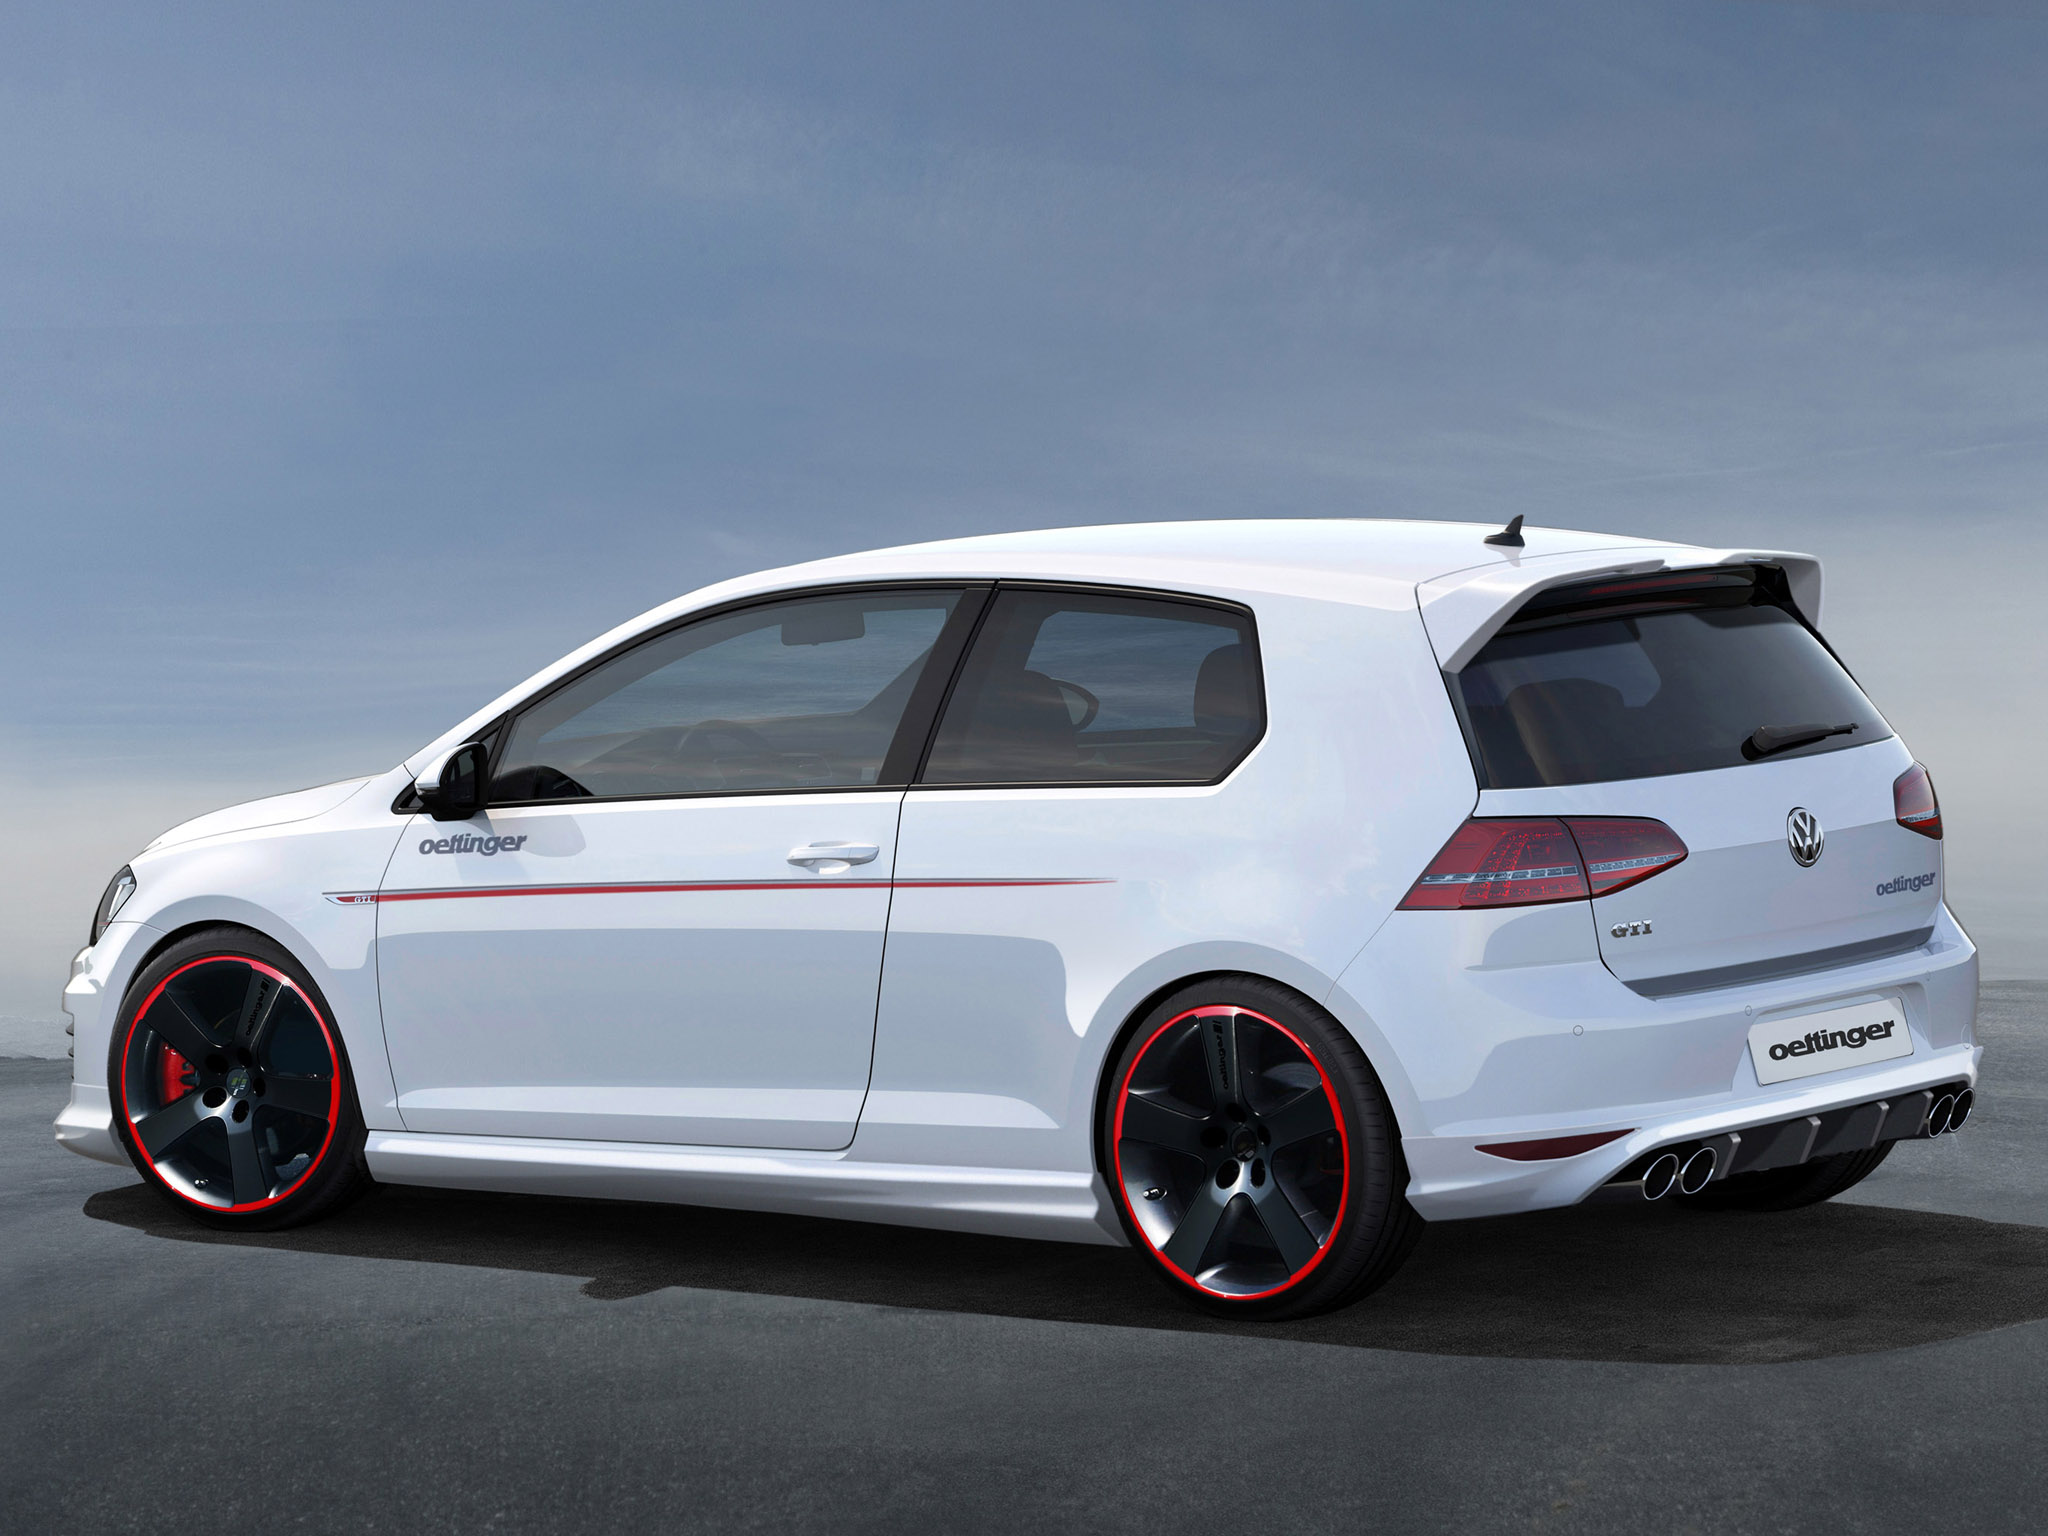 2013 oettinger volkswagen golf gti tuning w wallpaper. Black Bedroom Furniture Sets. Home Design Ideas